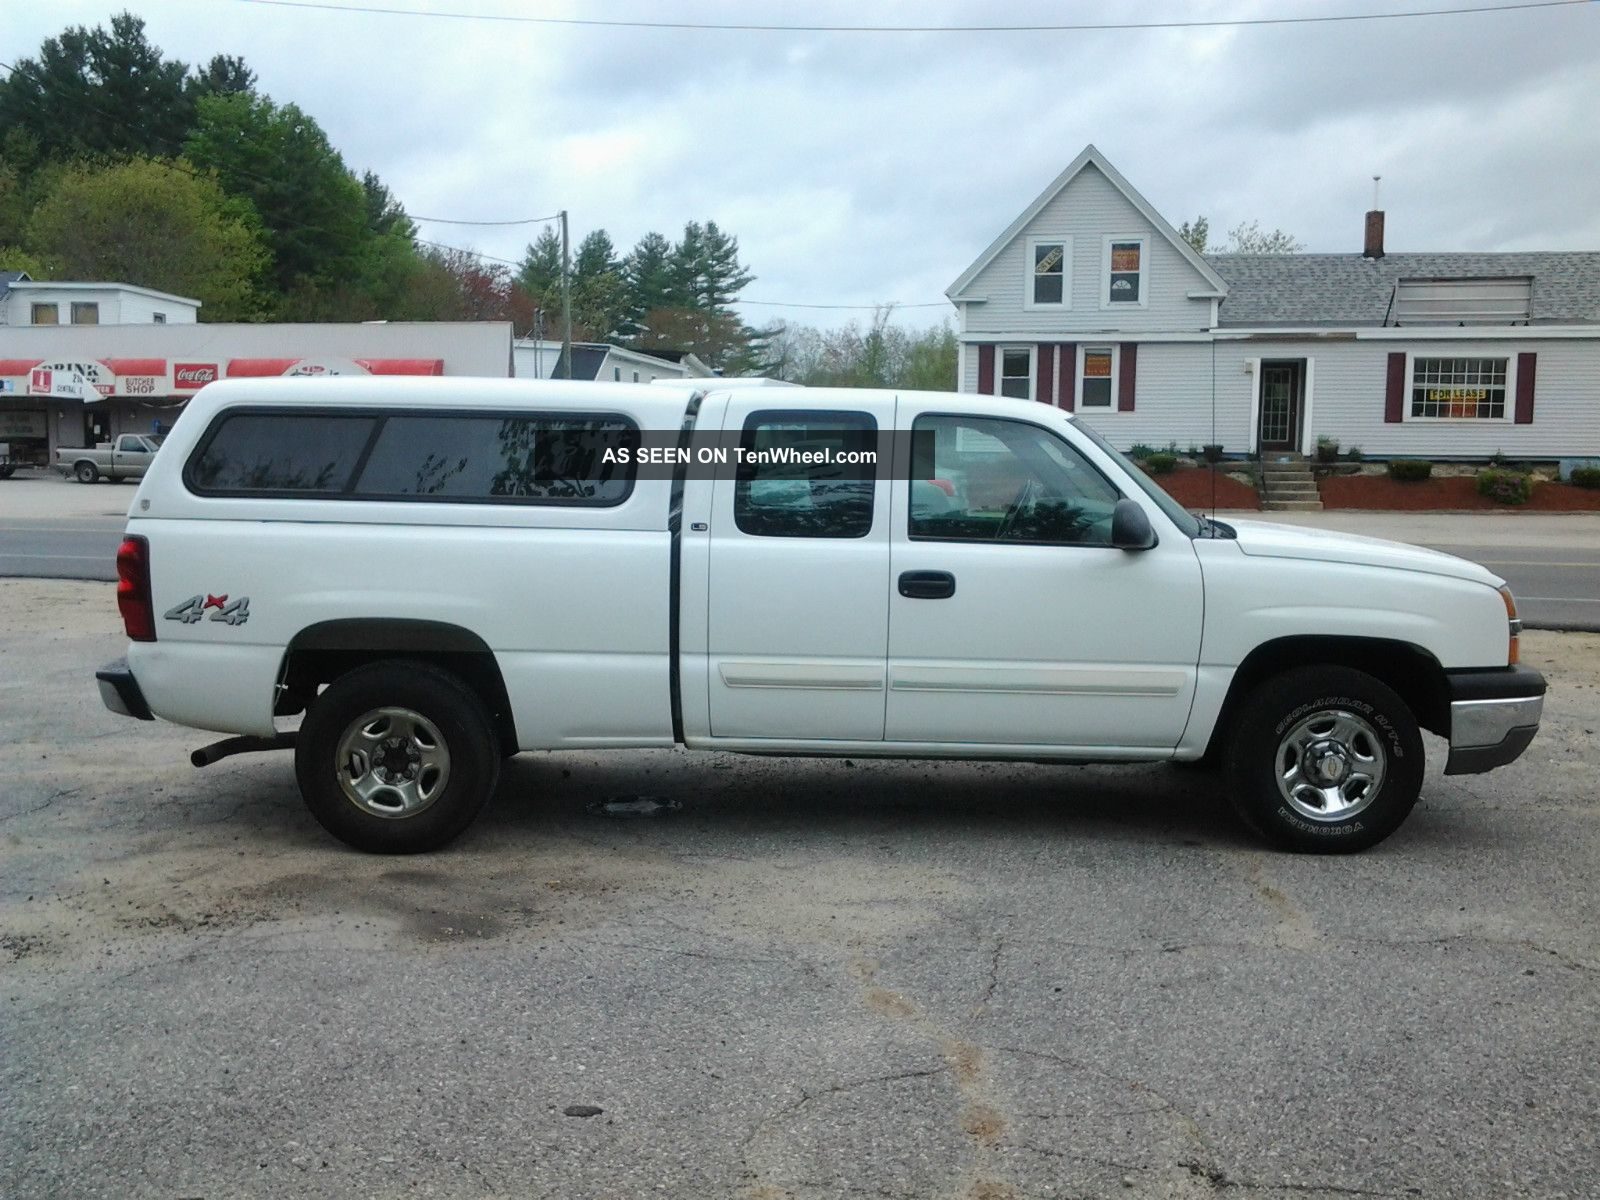 2003 chevrolet silverado 1500 ls extended cab 4x4 w matching cap. Black Bedroom Furniture Sets. Home Design Ideas